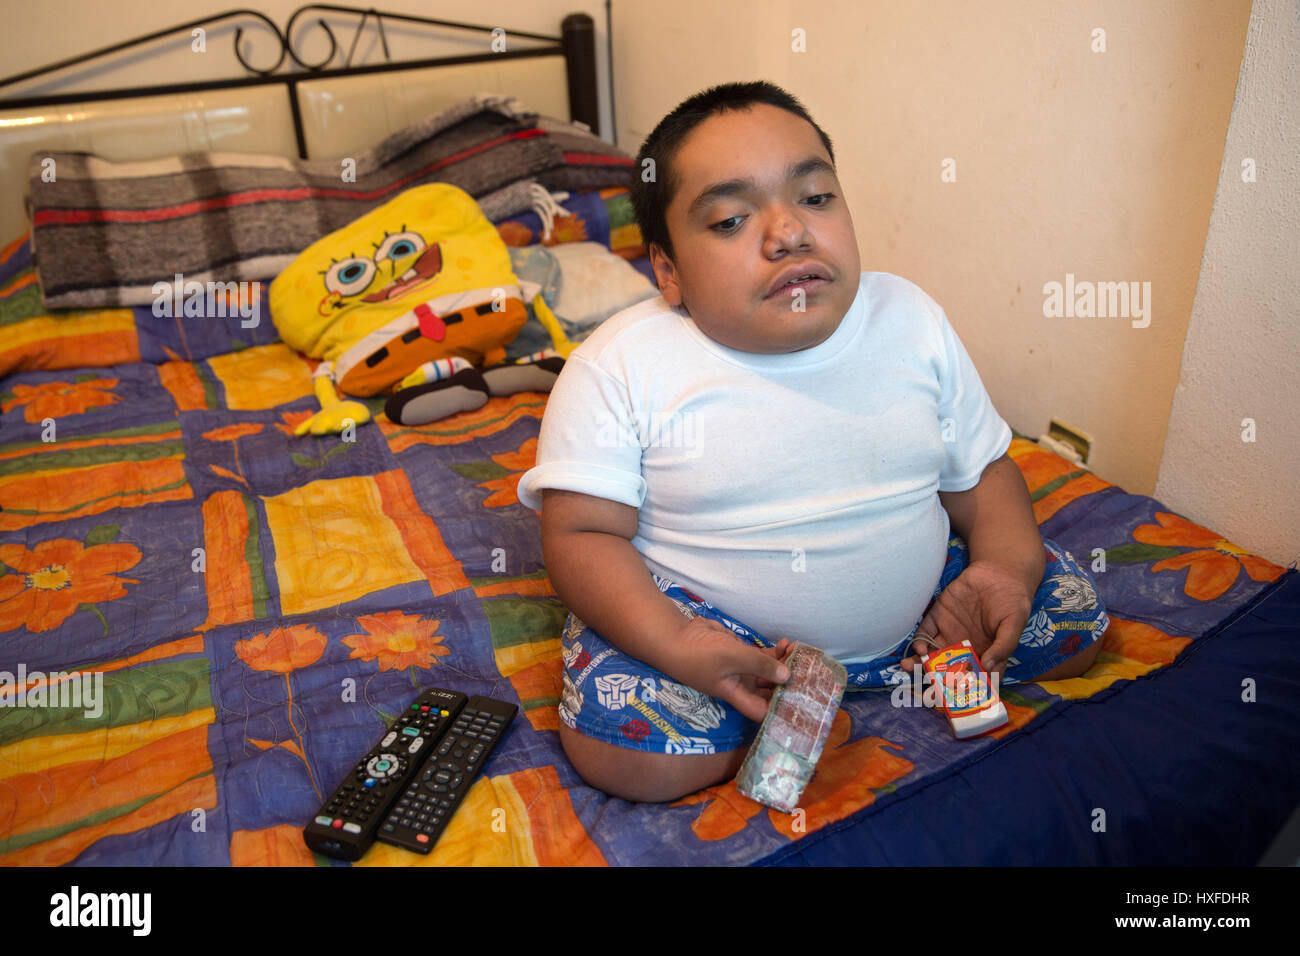 Joaquin Eduardo Torres Gil, 14, watching television in his bedroom in Mexico City, Mexico, on February 16, 2017. - Stock Image